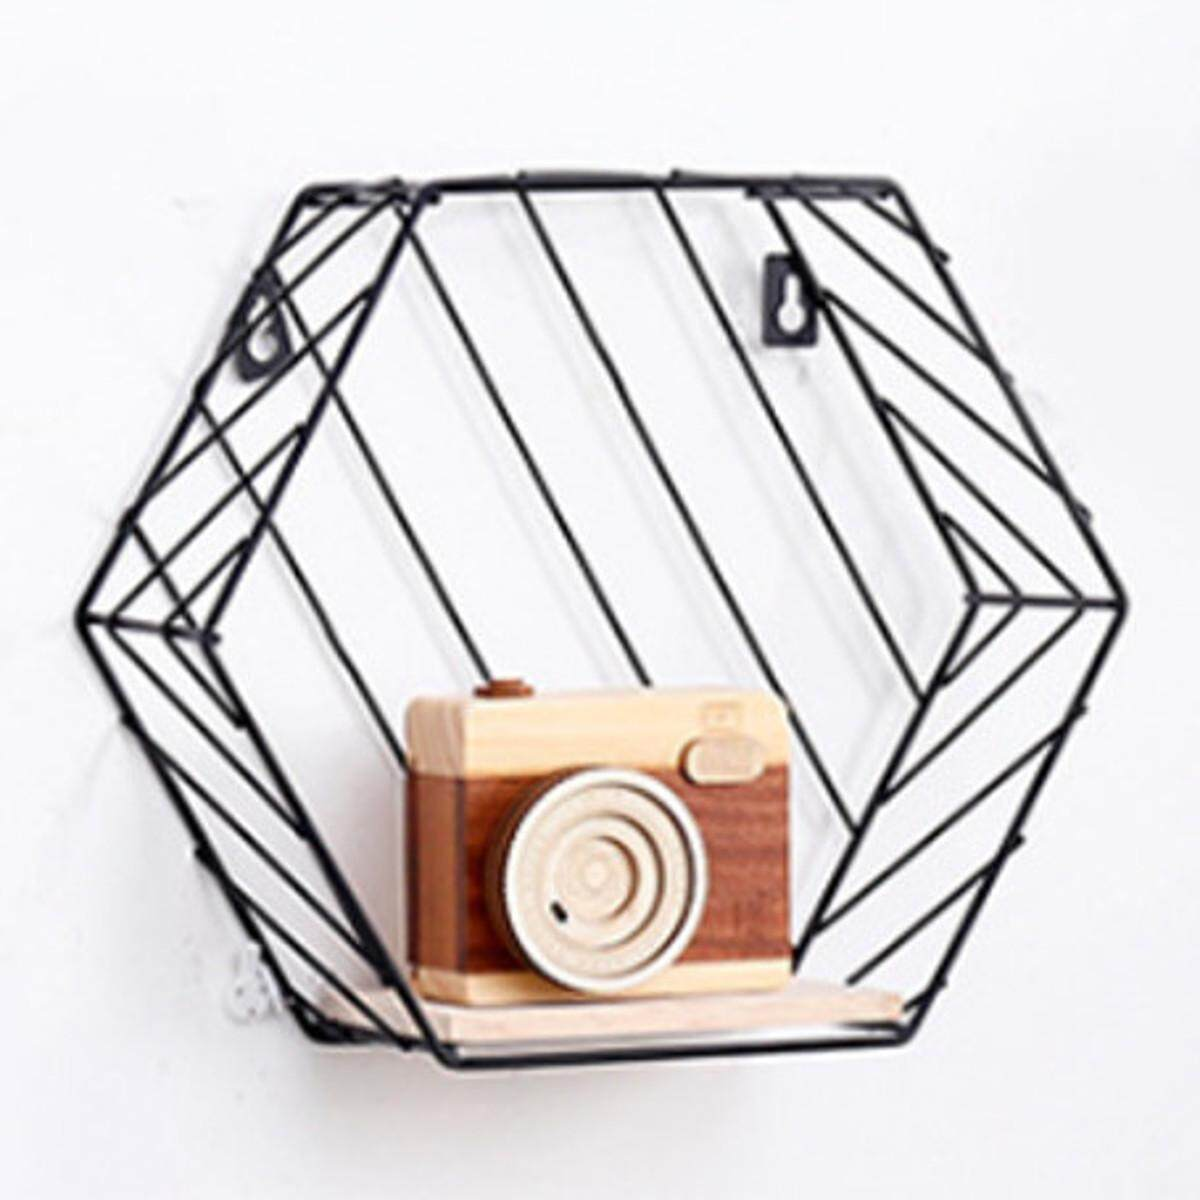 Hexagon Metal Wall Hanging Shelf Rack Storage Rack Holder Organizer Twill Design